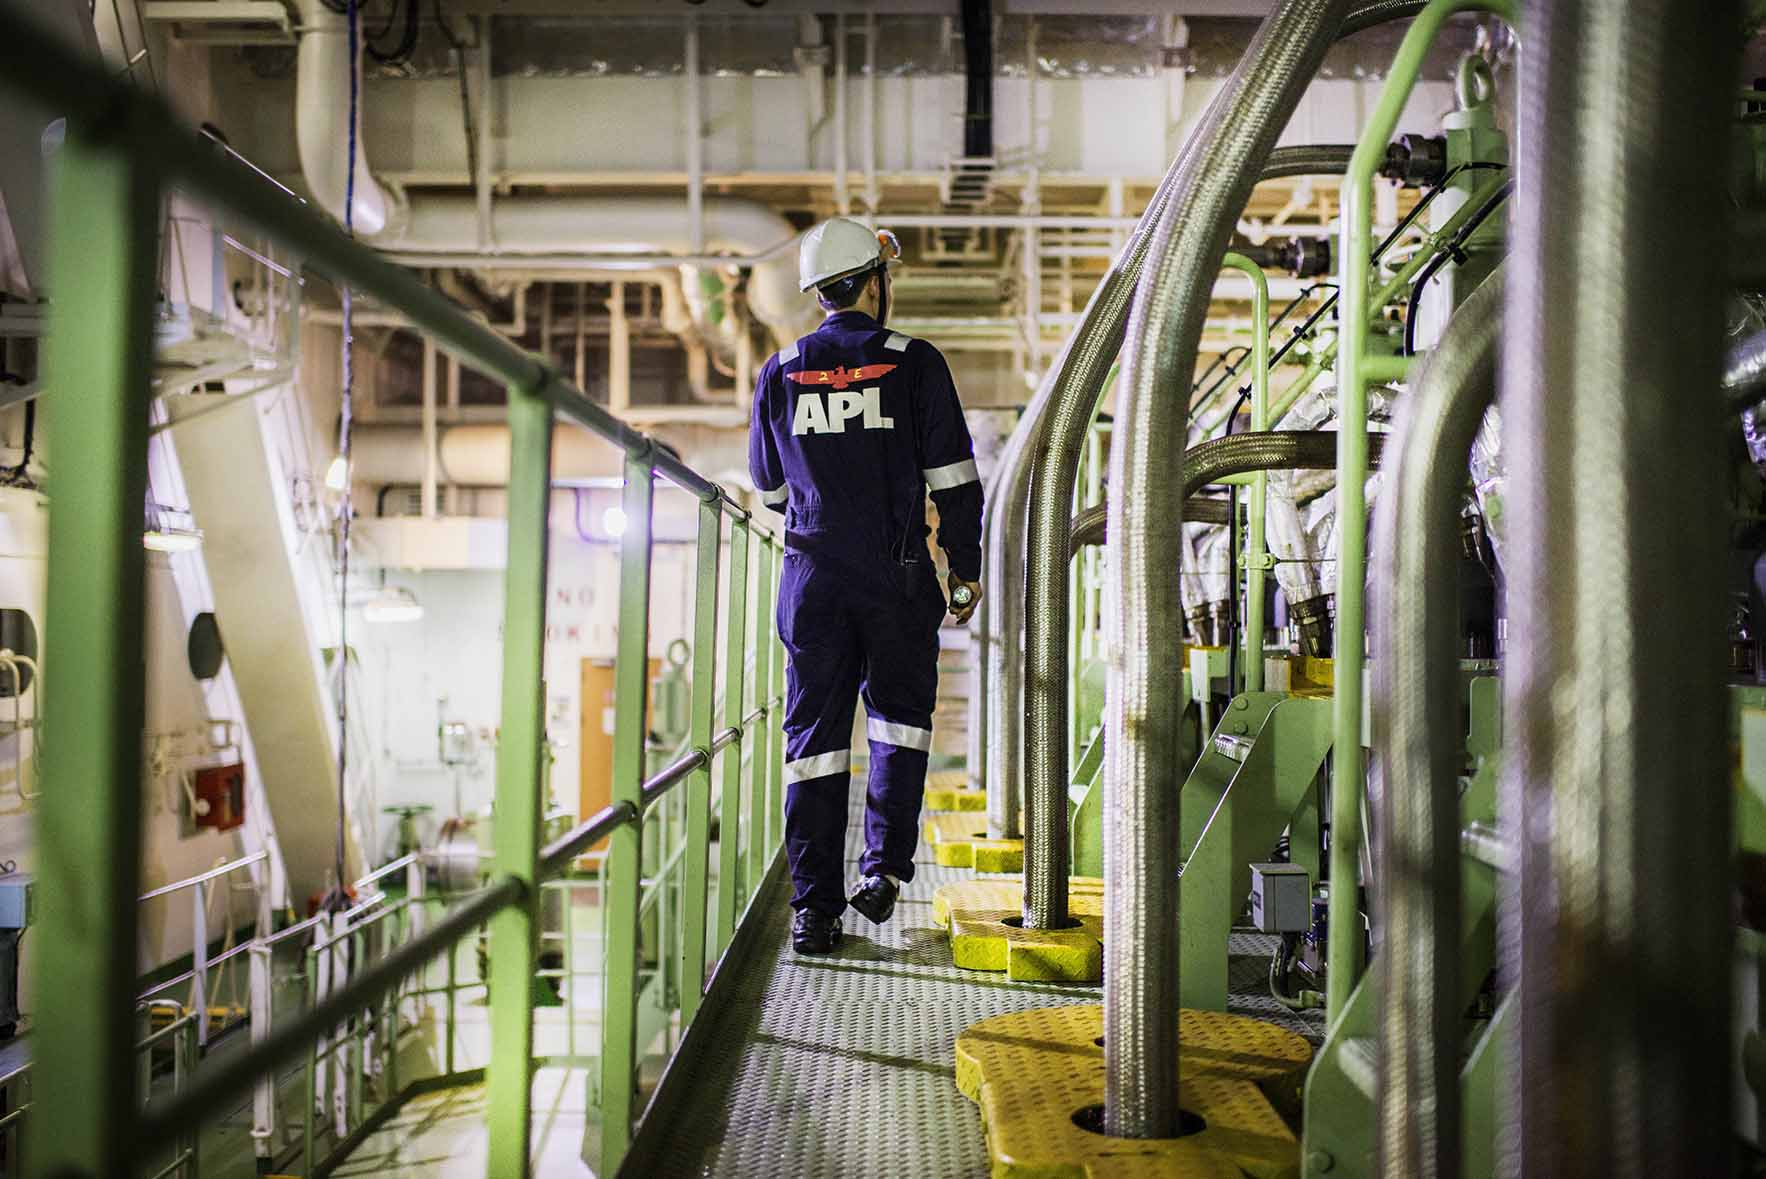 APL Seafarer - At work in the engine room